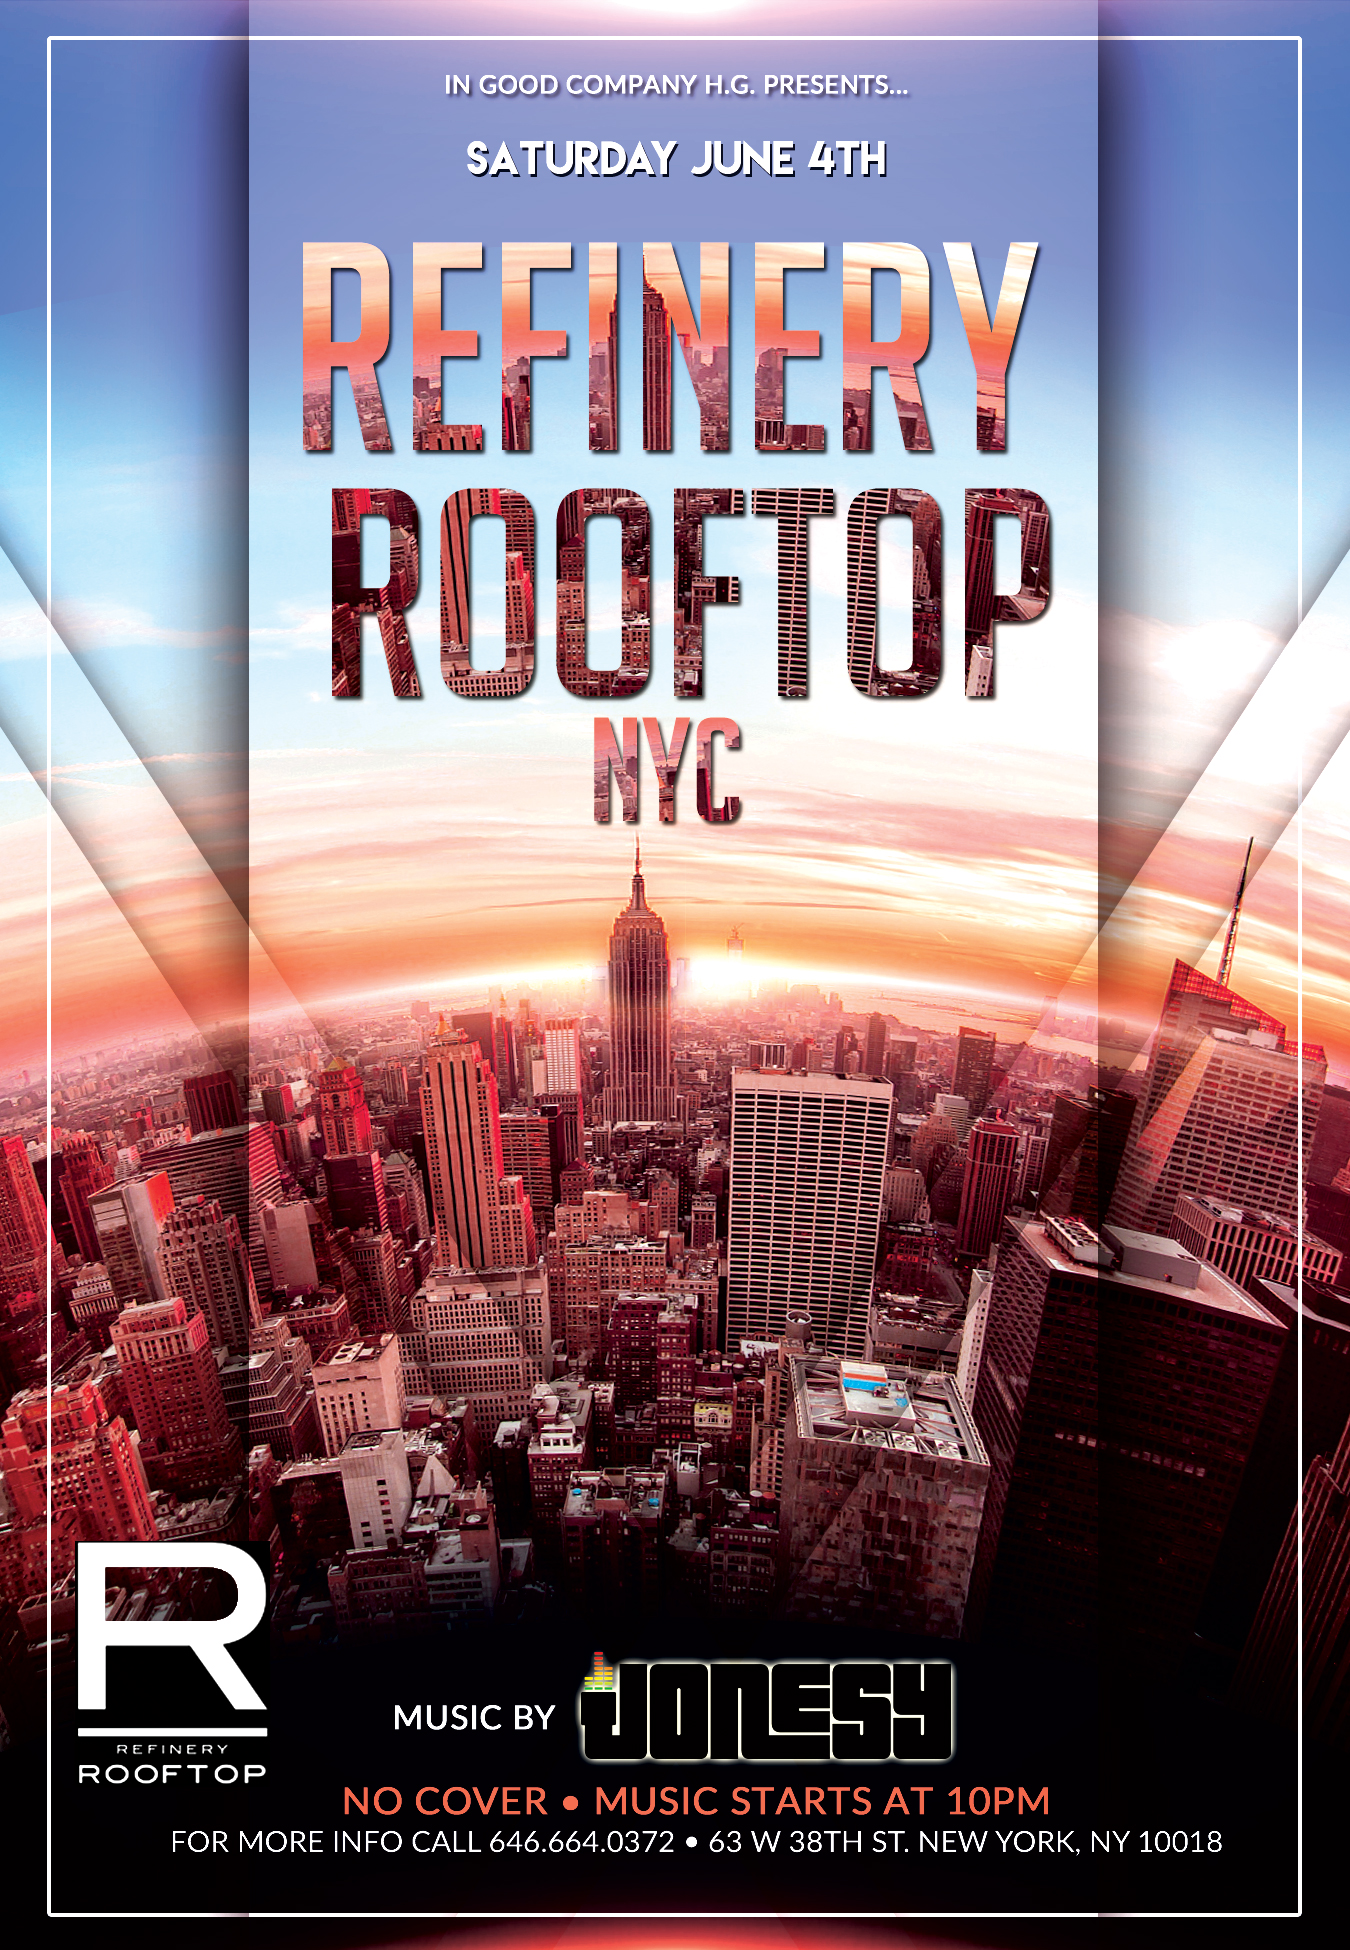 SATURDAY, JUNE 4TH JOIN US AT REFINERY ROOFTOP NYC FOR MUSIC BY YOURS TRULY 10PM - CLOSE. GORGEOUS ROOFTOP VIEWS OF THE EMPIRE STATE BUILDING AND NYC SKYLINE + TOP SHELF DRINKS + GREAT MUSIC. NO COVER, DRESS TO IMPRES.